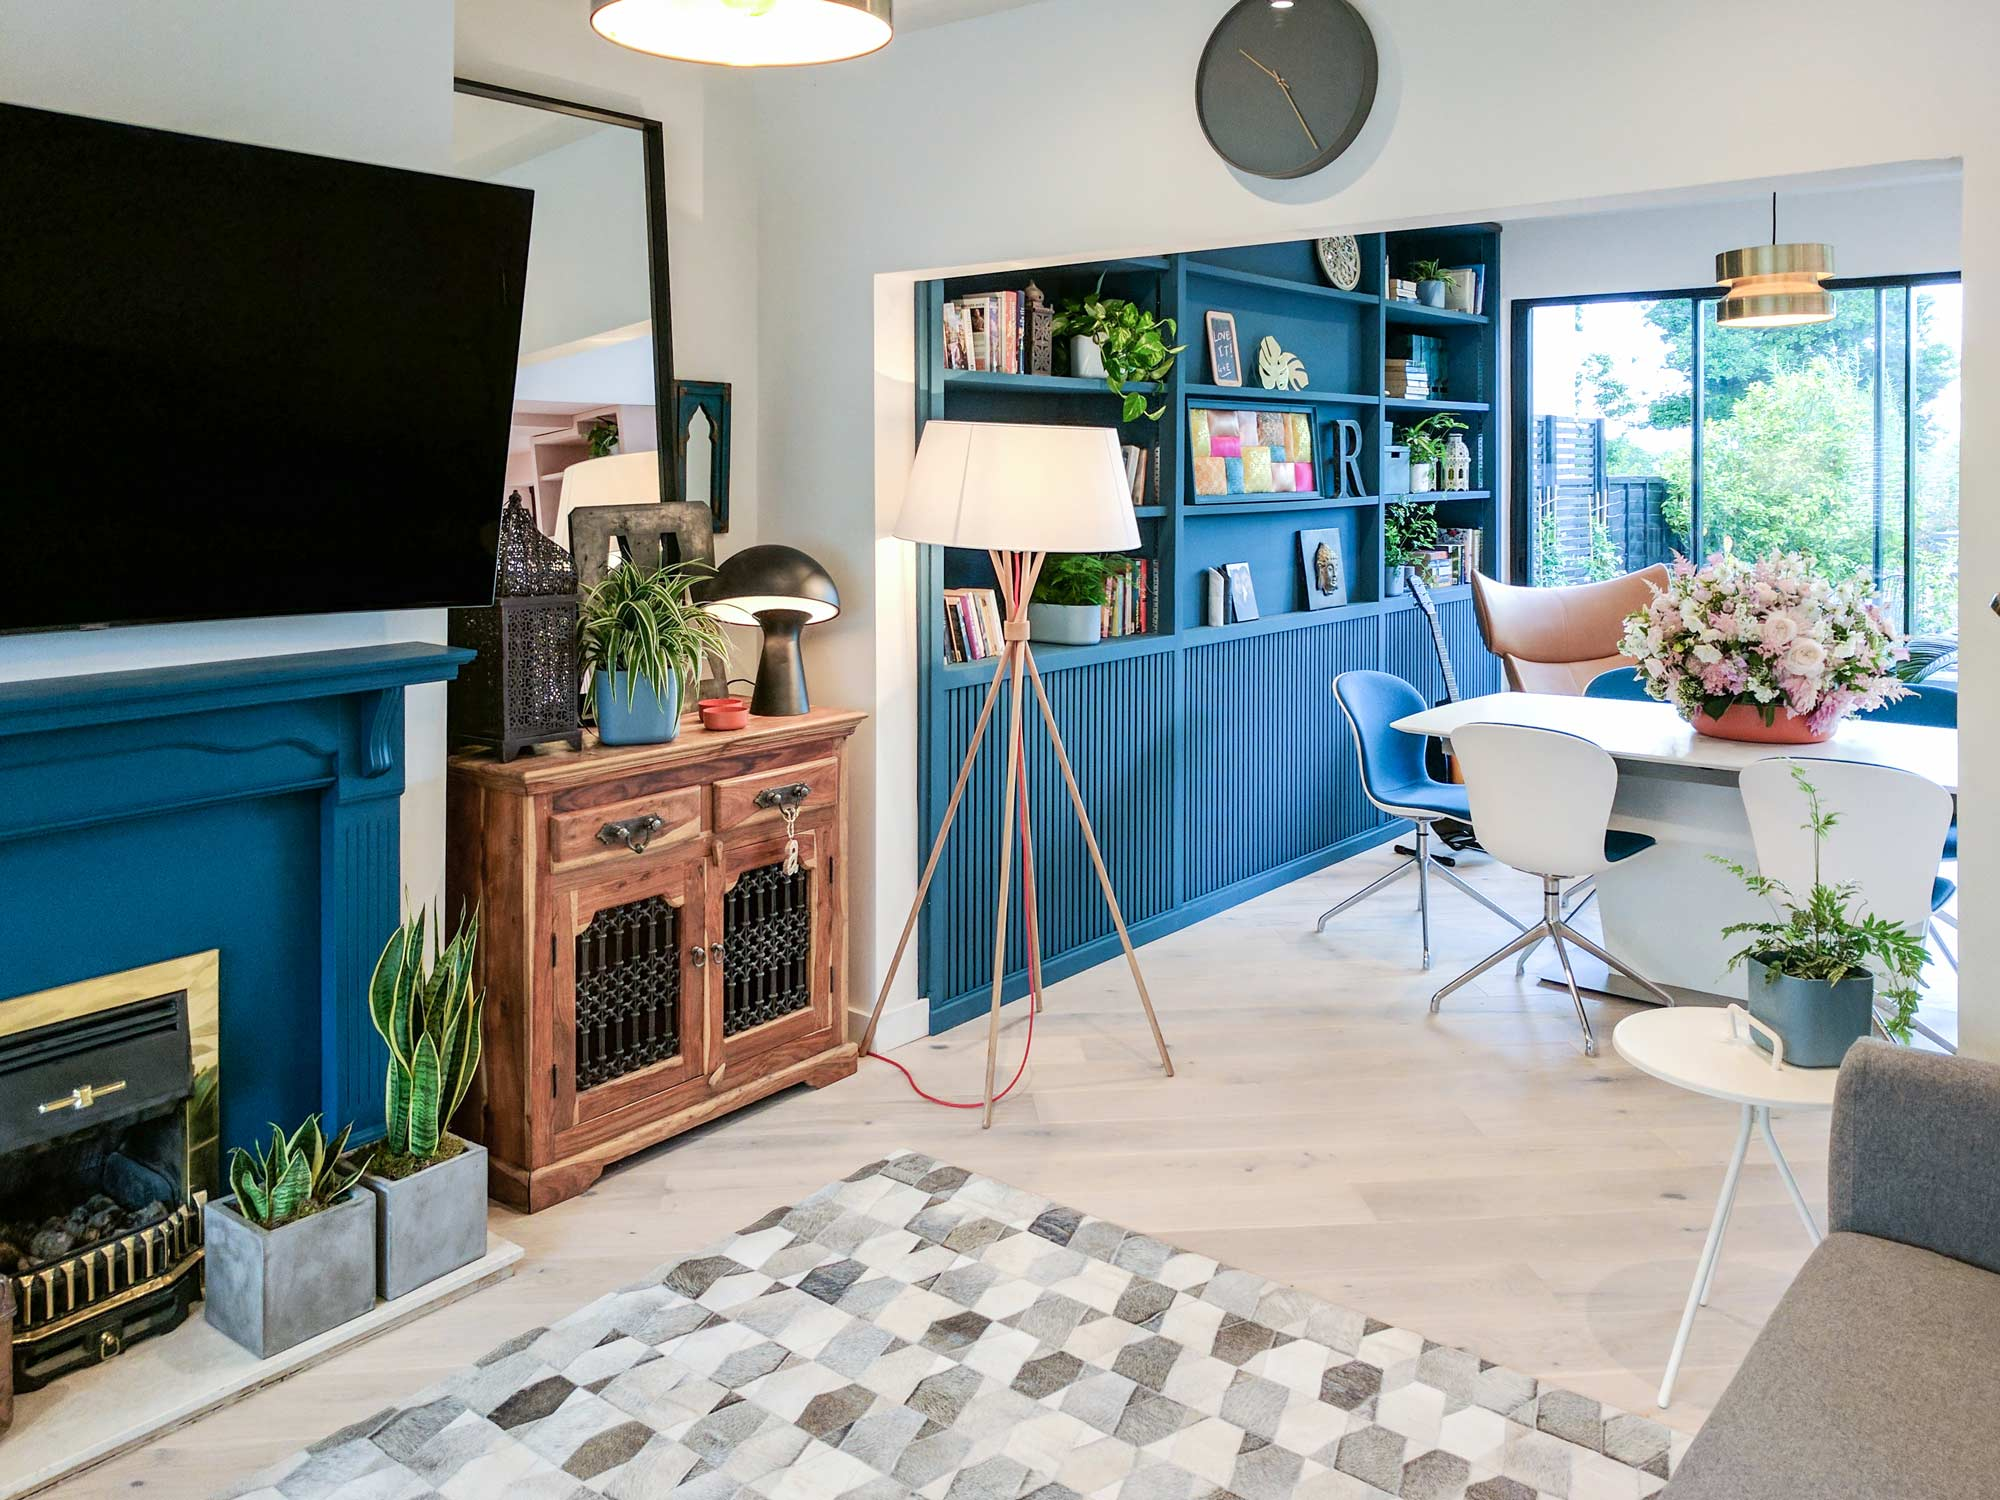 Teal fireplace and bookshelf become the key focus points in the living room and dining area of the refurbished extension.